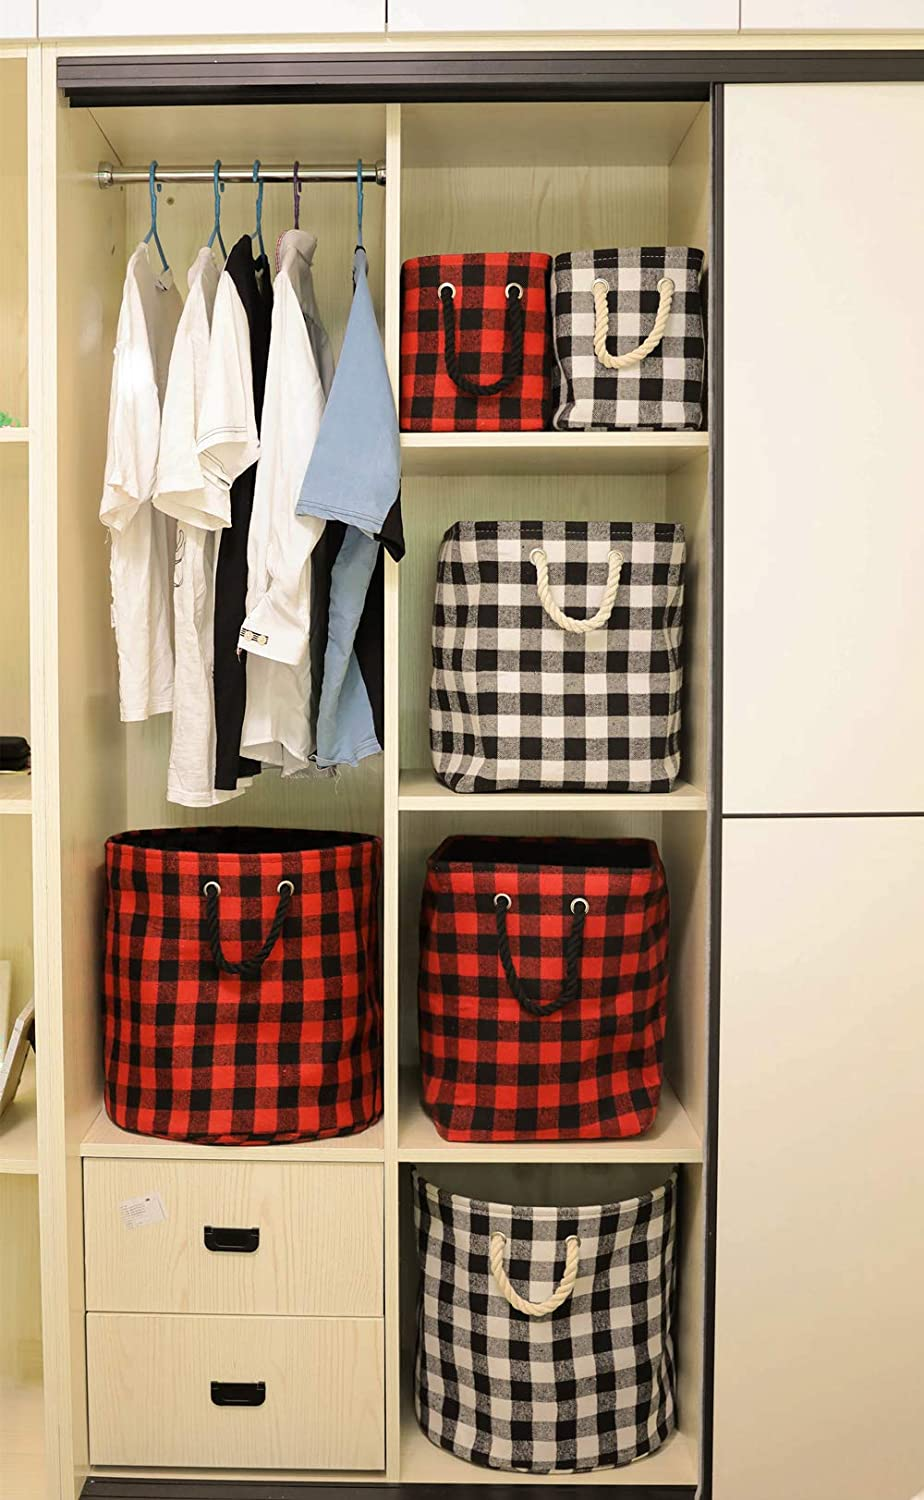 M Rectangular Open Storage Baskets Cubes Decorative Home Organizer Containers with Cotton Rope Handles Stylish Storage Solution for Home or Office Red Black Grid